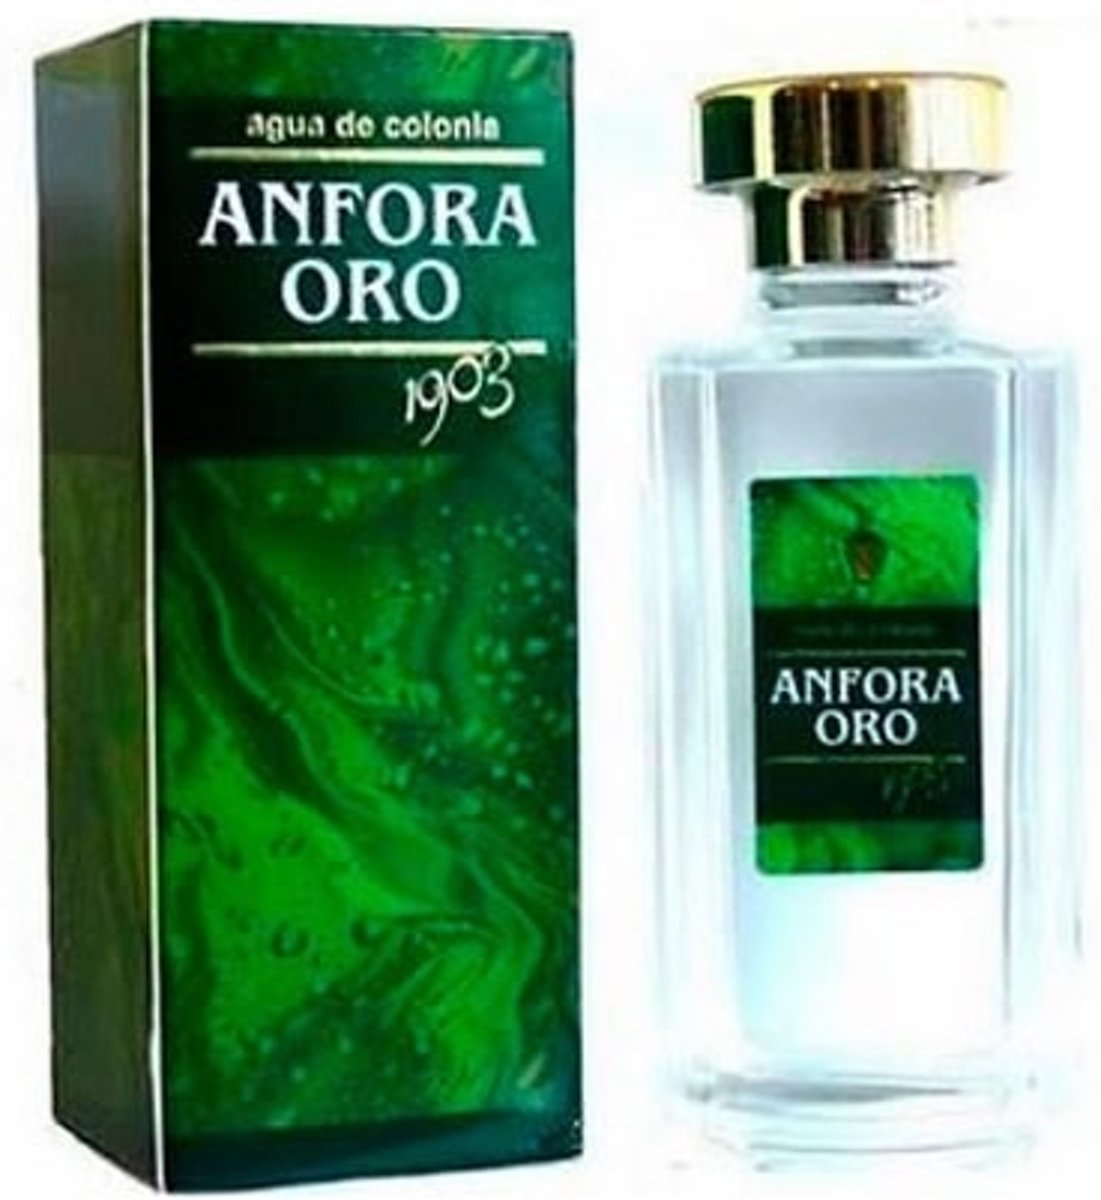 MULTI BUNDEL 3 stuks Instituto Espanol Anfora Oro Eau De Cologne 800ml